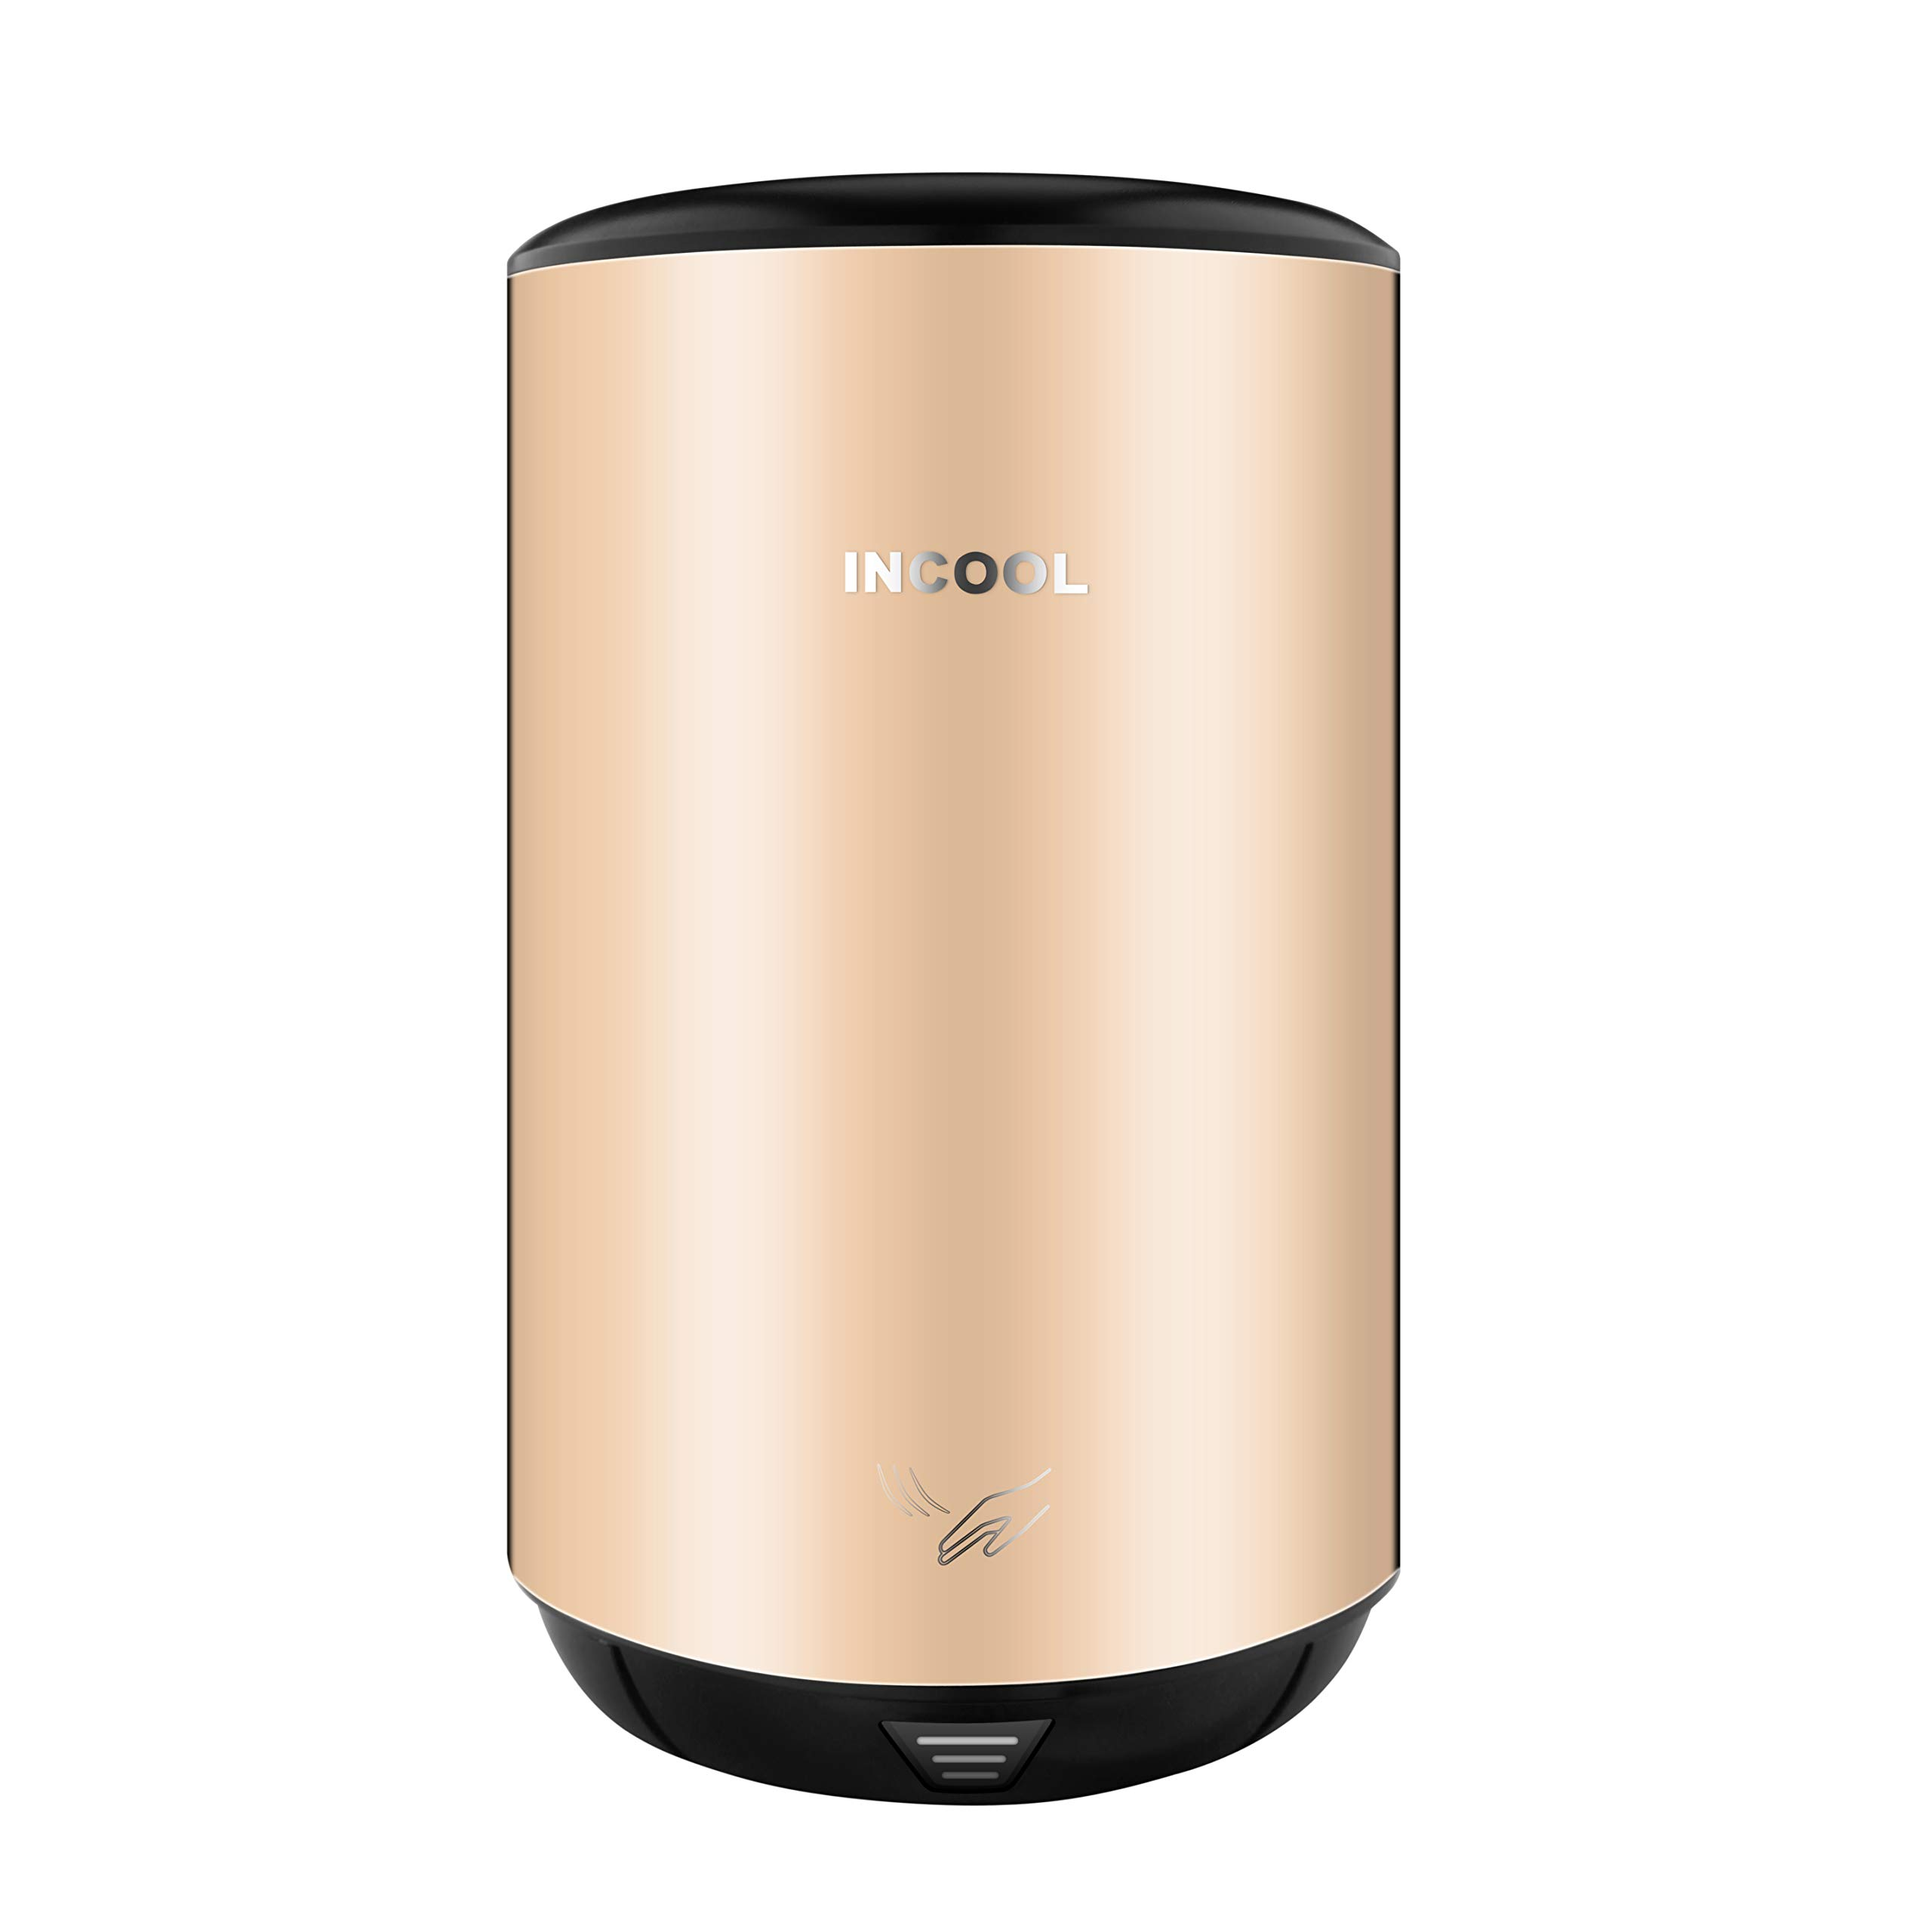 iNcool High Speed Commercial Hand Dryer,Powerful Wind Hand Blower(Bronzed Stainless Steel)